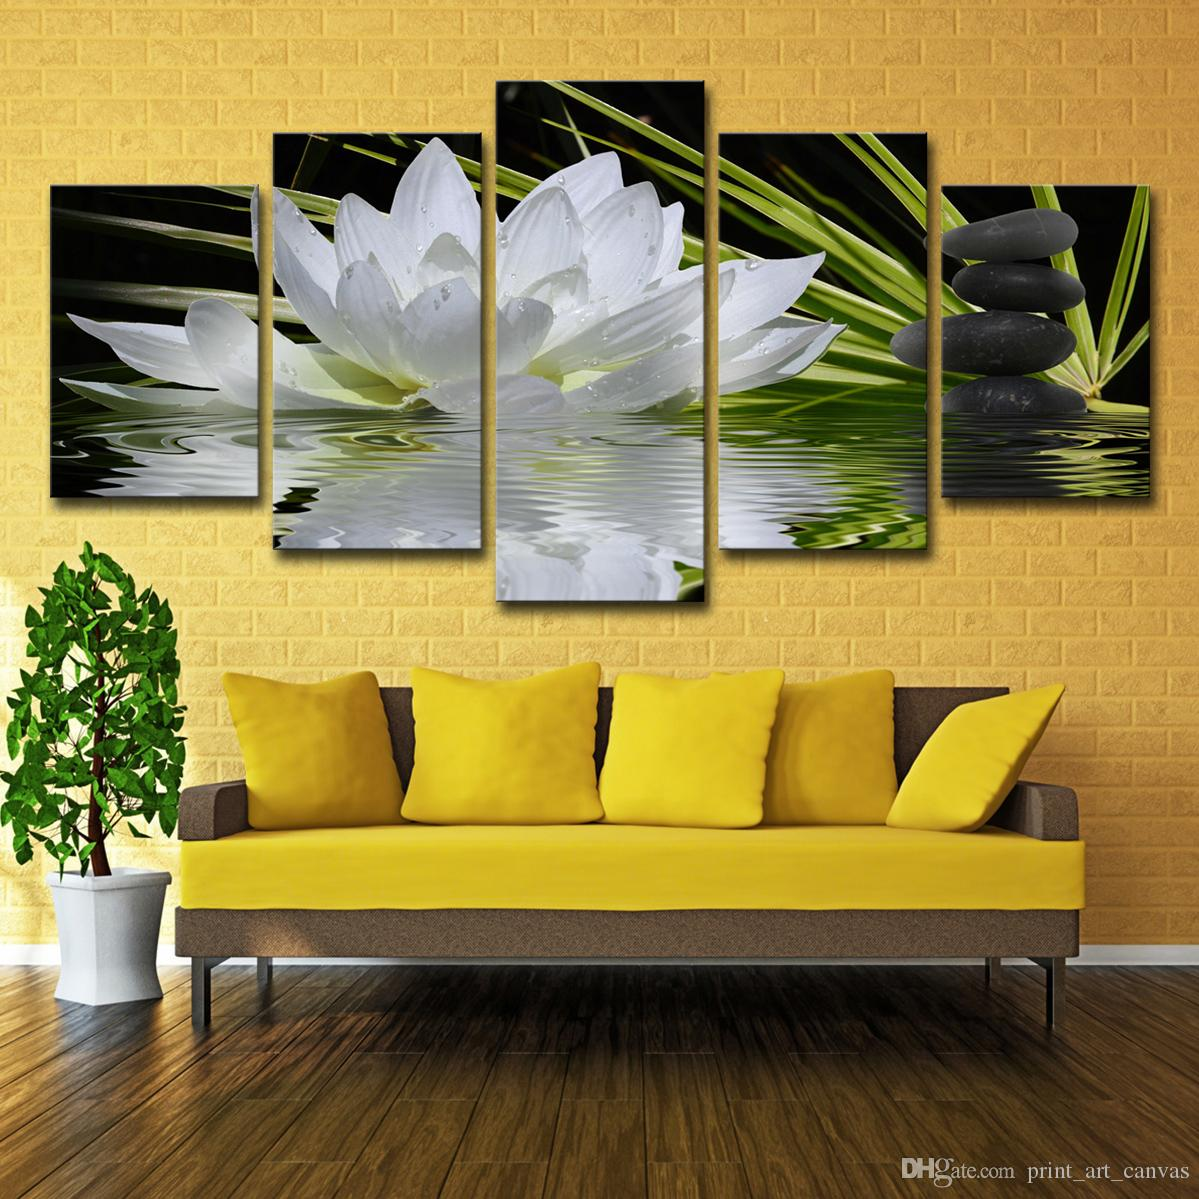 artwork for kitchen las vegas strip hotels with canvas paintings wall art white lotus stones pictures hd prints flowers lake water posters home decor canada 2019 from print